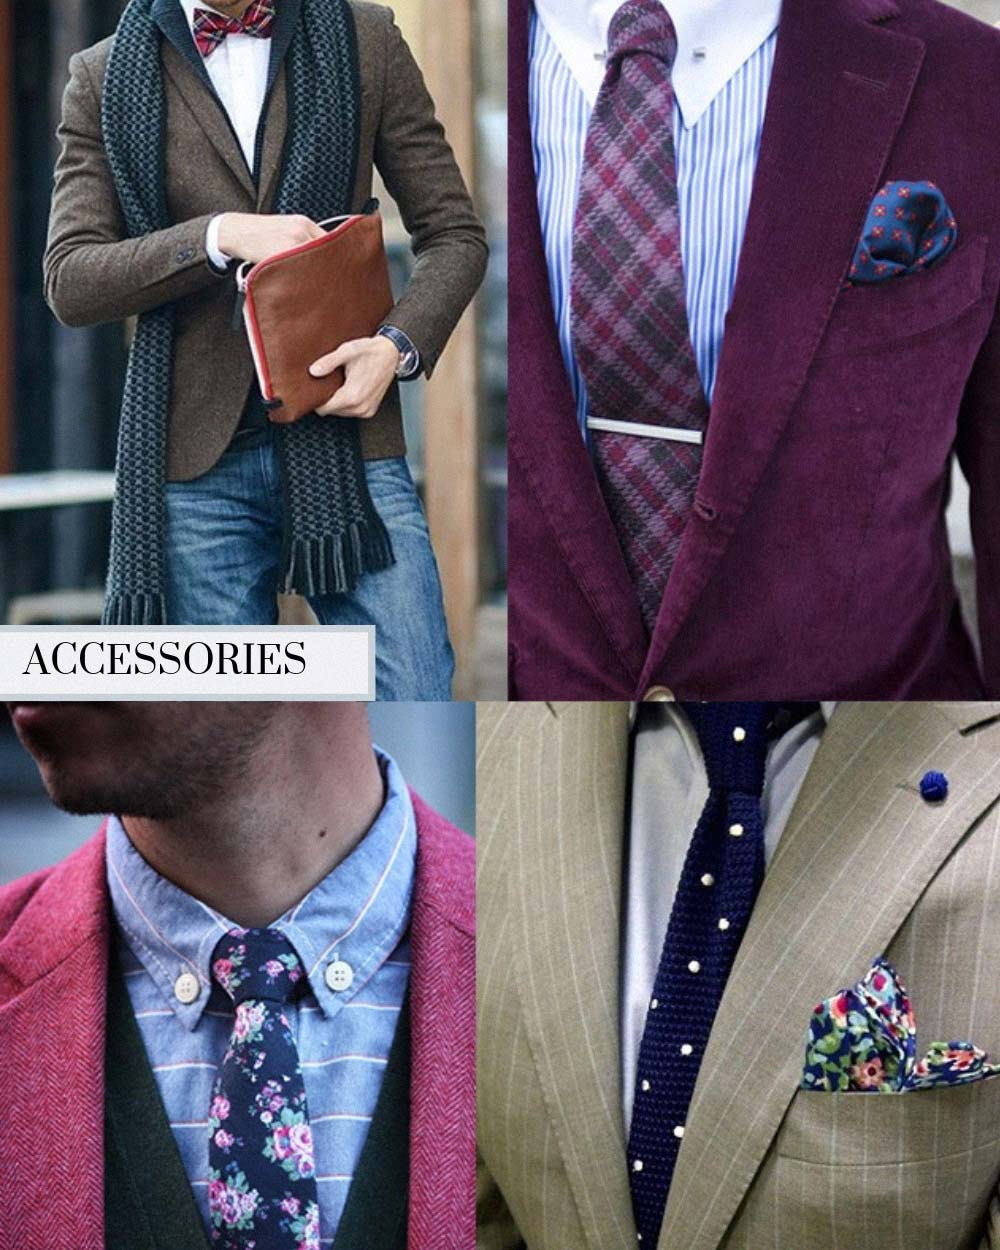 accessories for winter suits